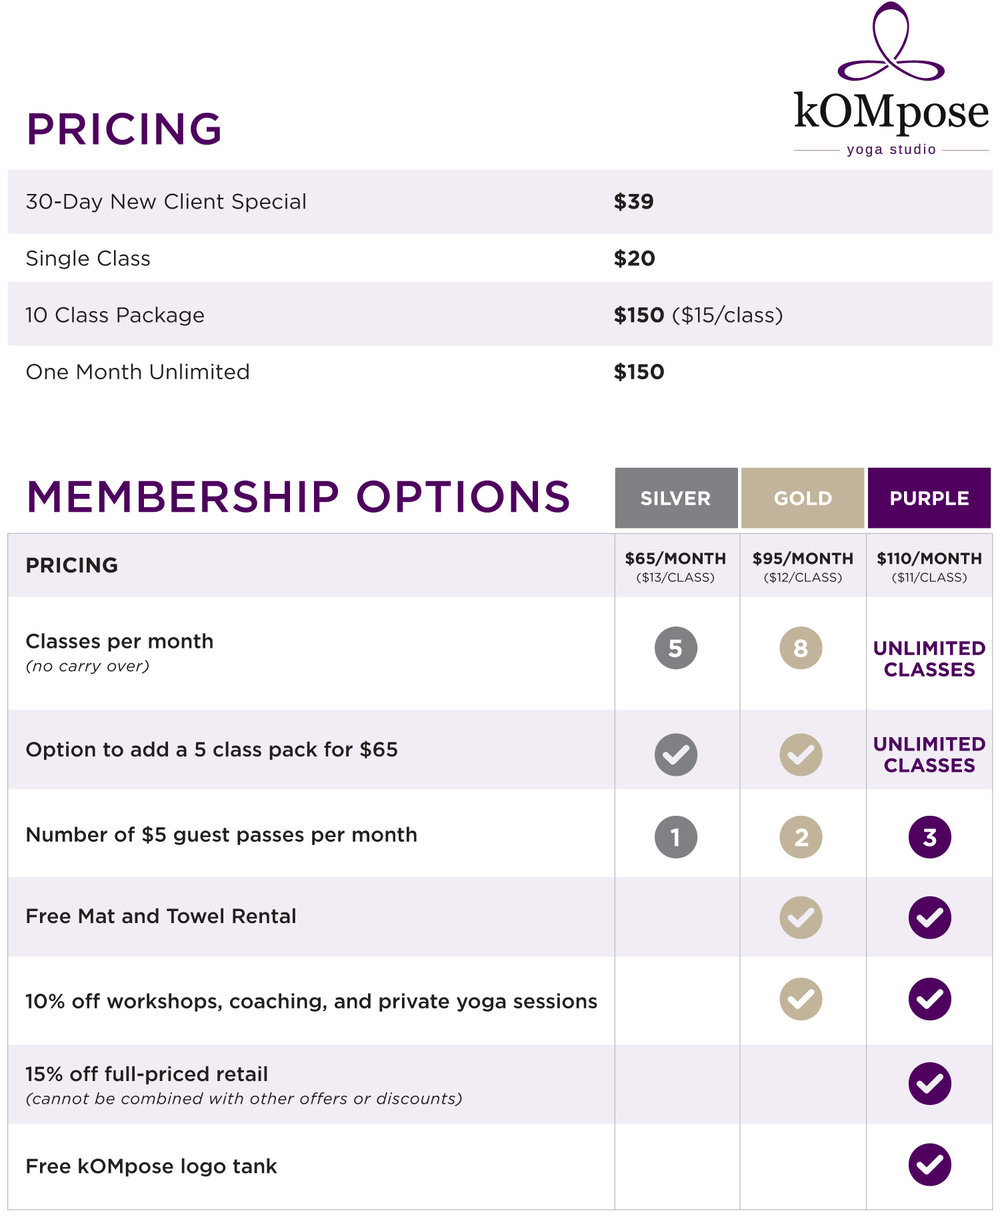 kompose-pricing-large.jpg